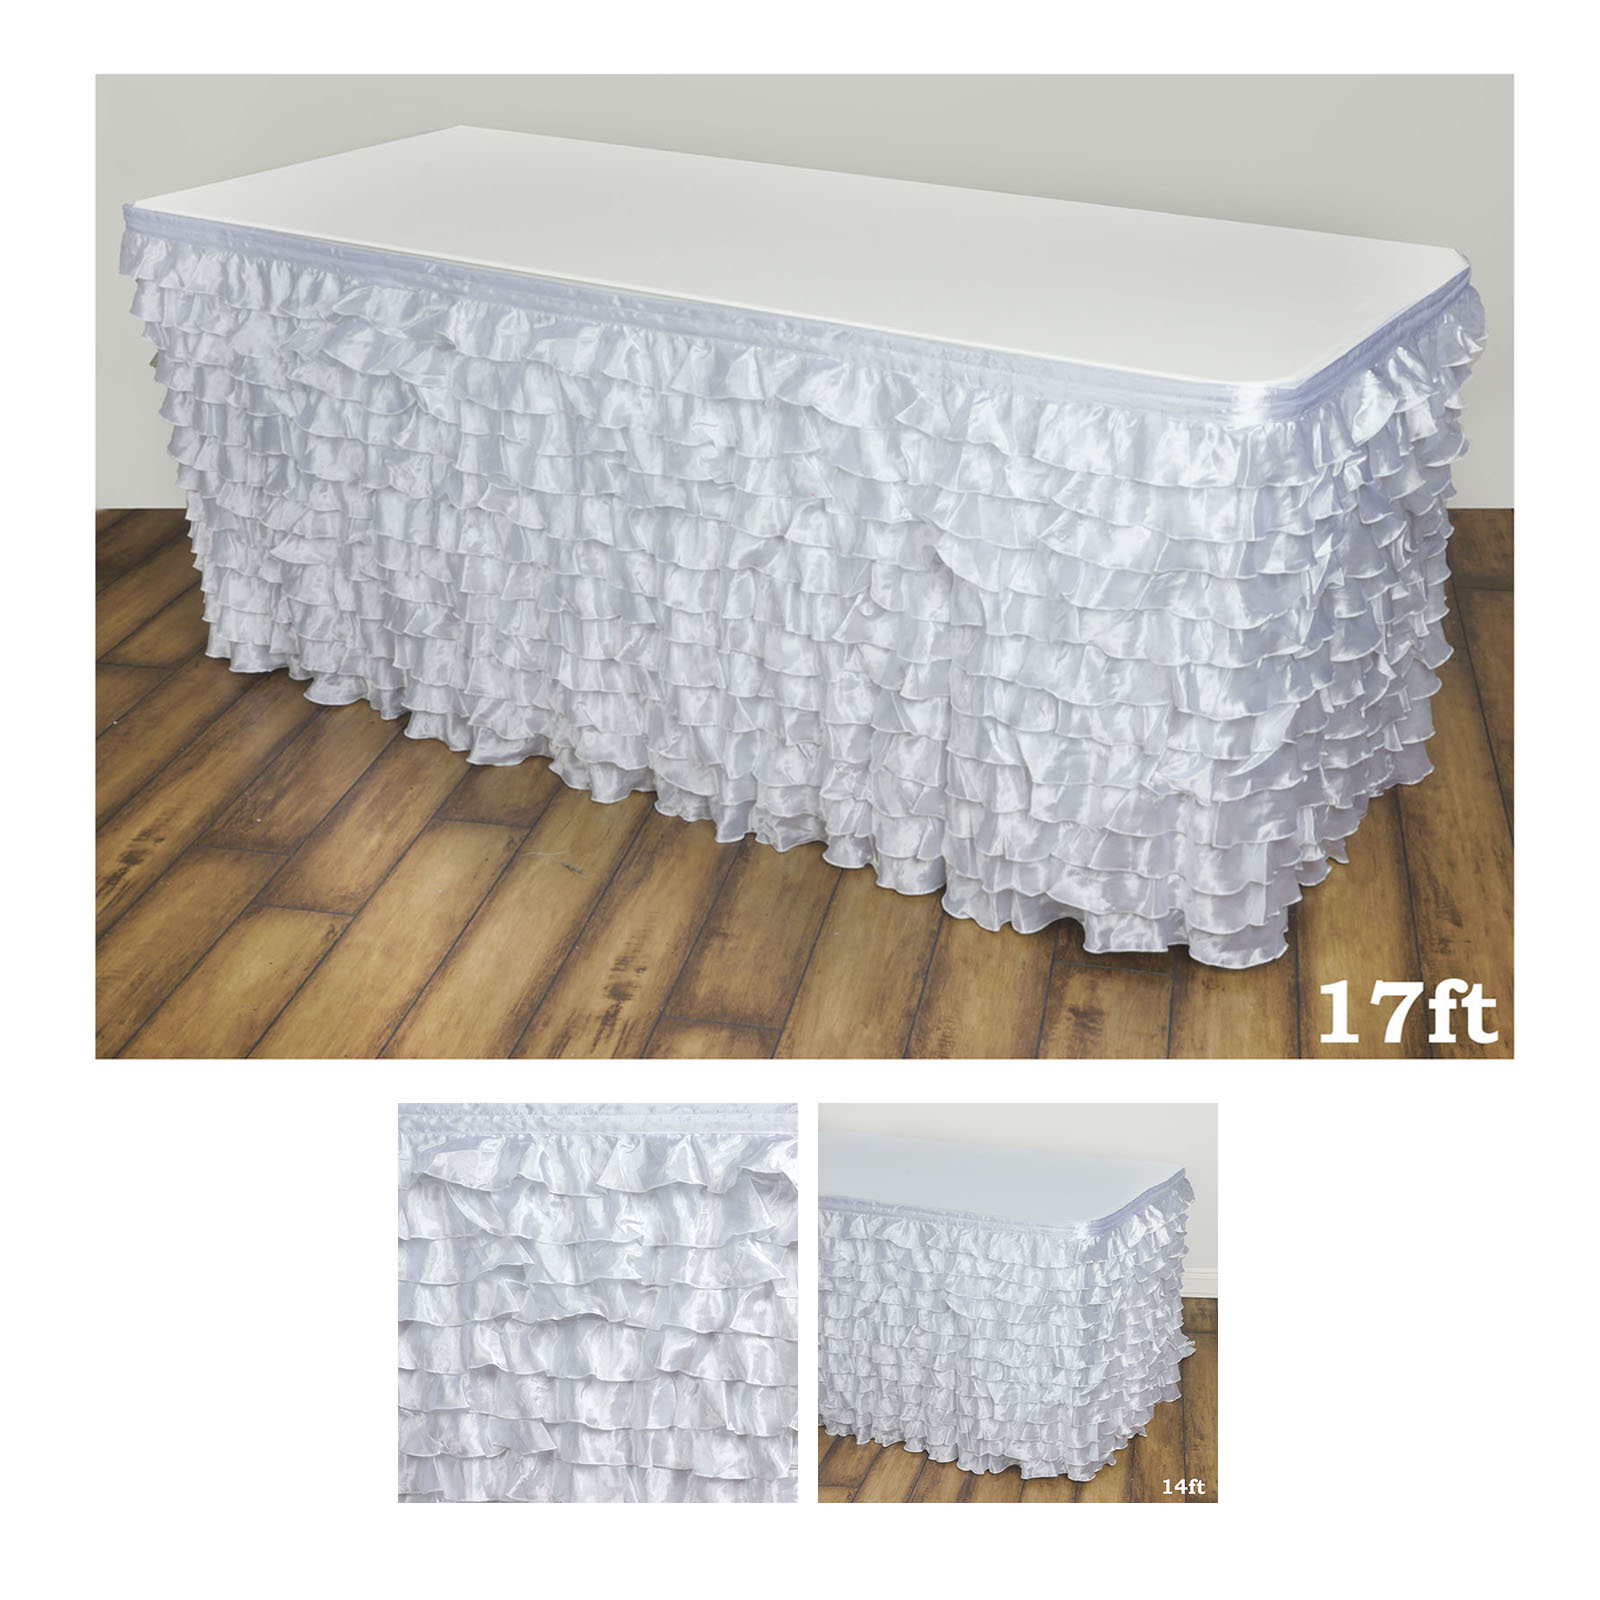 225 & Details about Flamenca Satin Ruffle Table Skirt Table Covers For Rectangle Or Round Tables